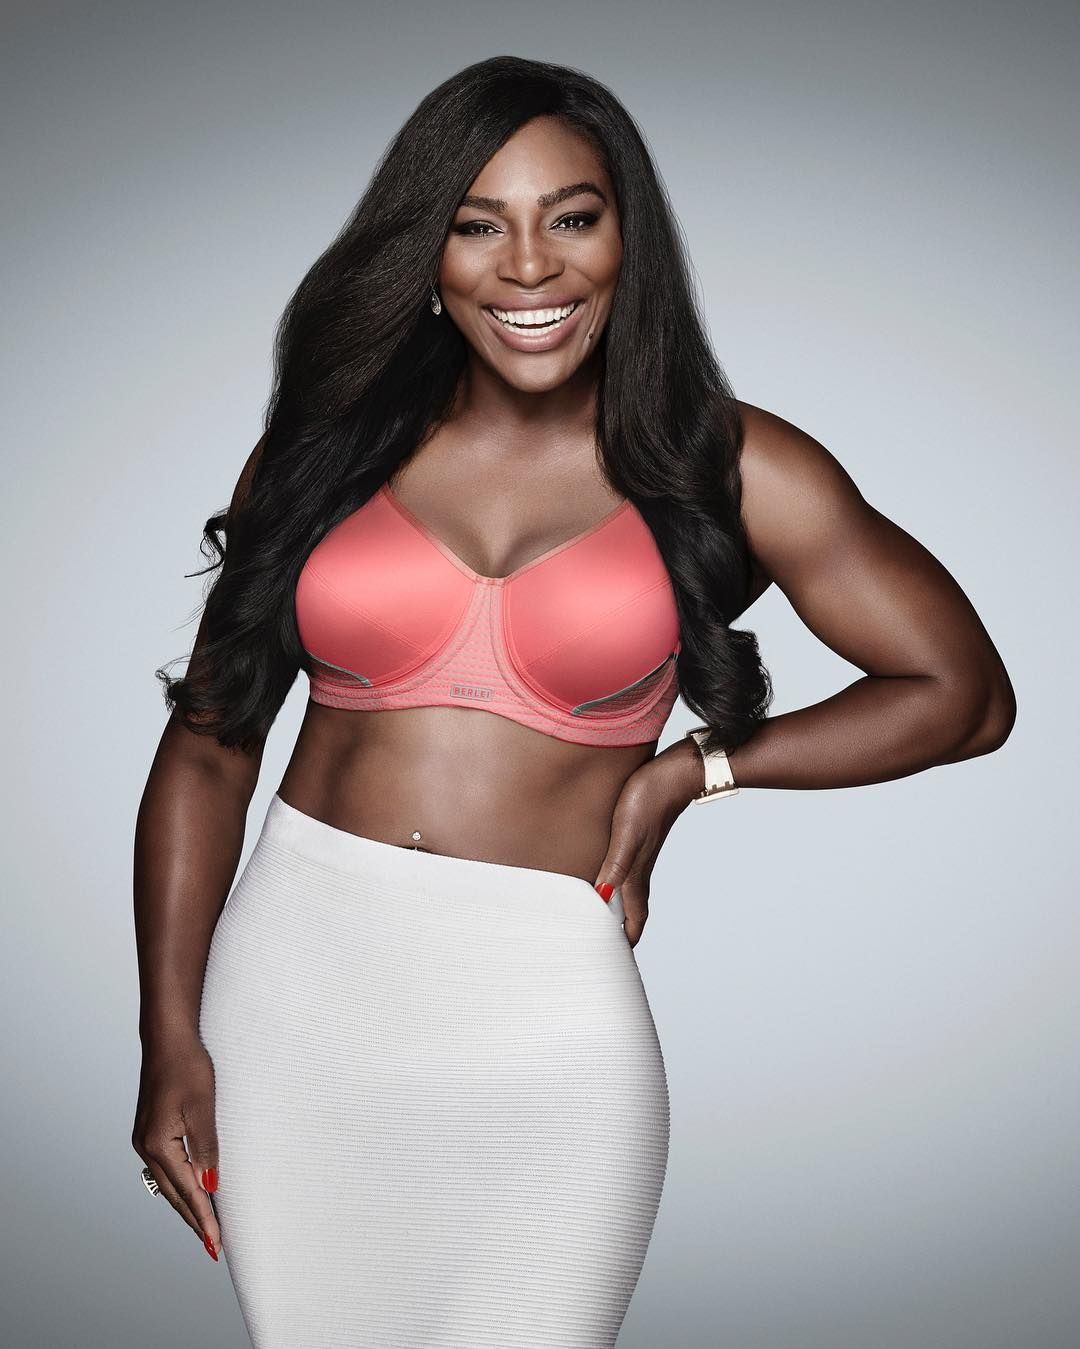 Serena Williams Sexy Phot...